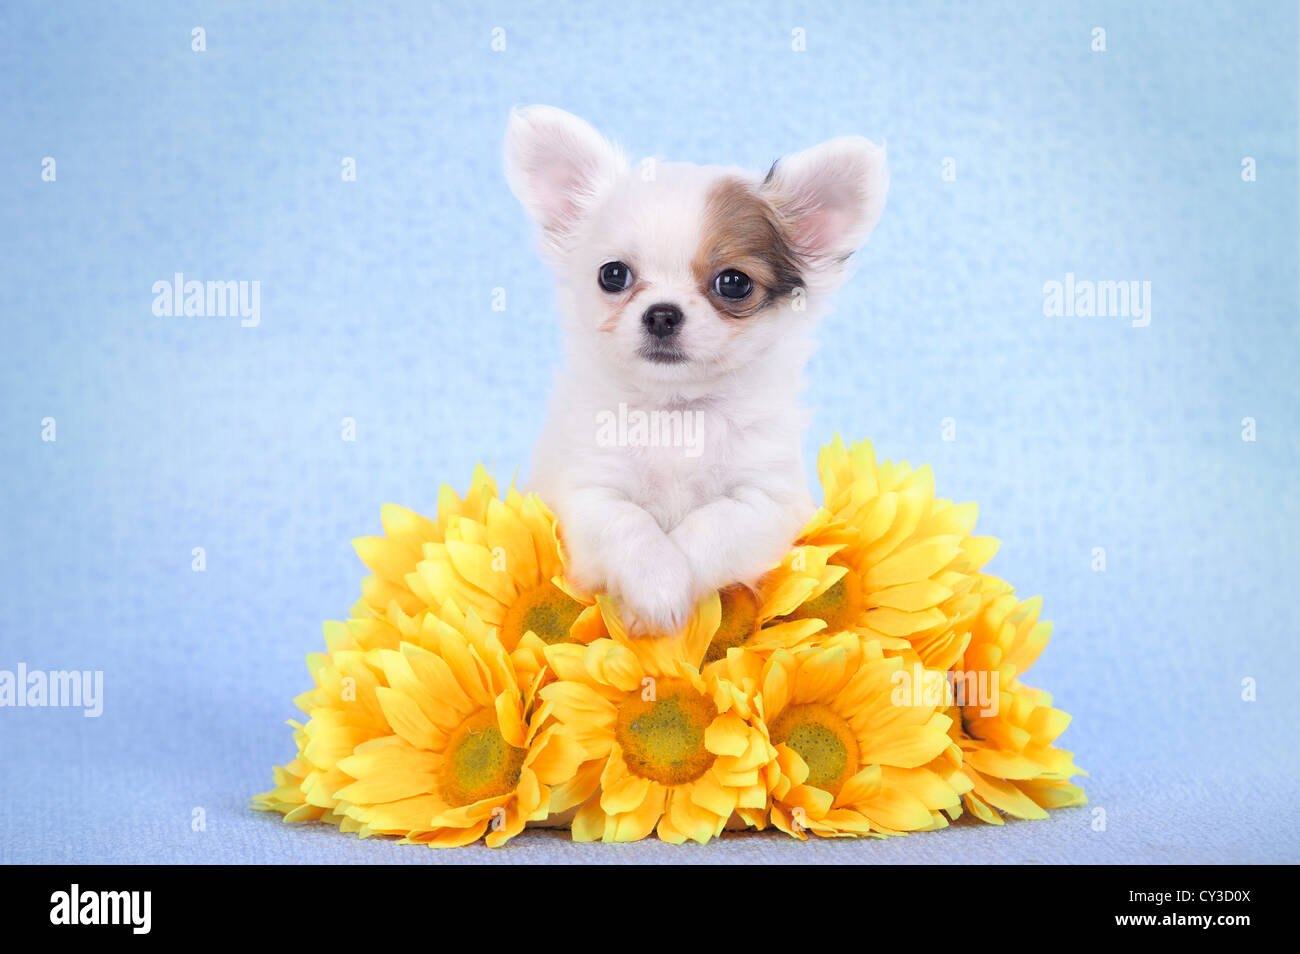 Chihuahua puppy portrait with yellow flowers - Stock Image